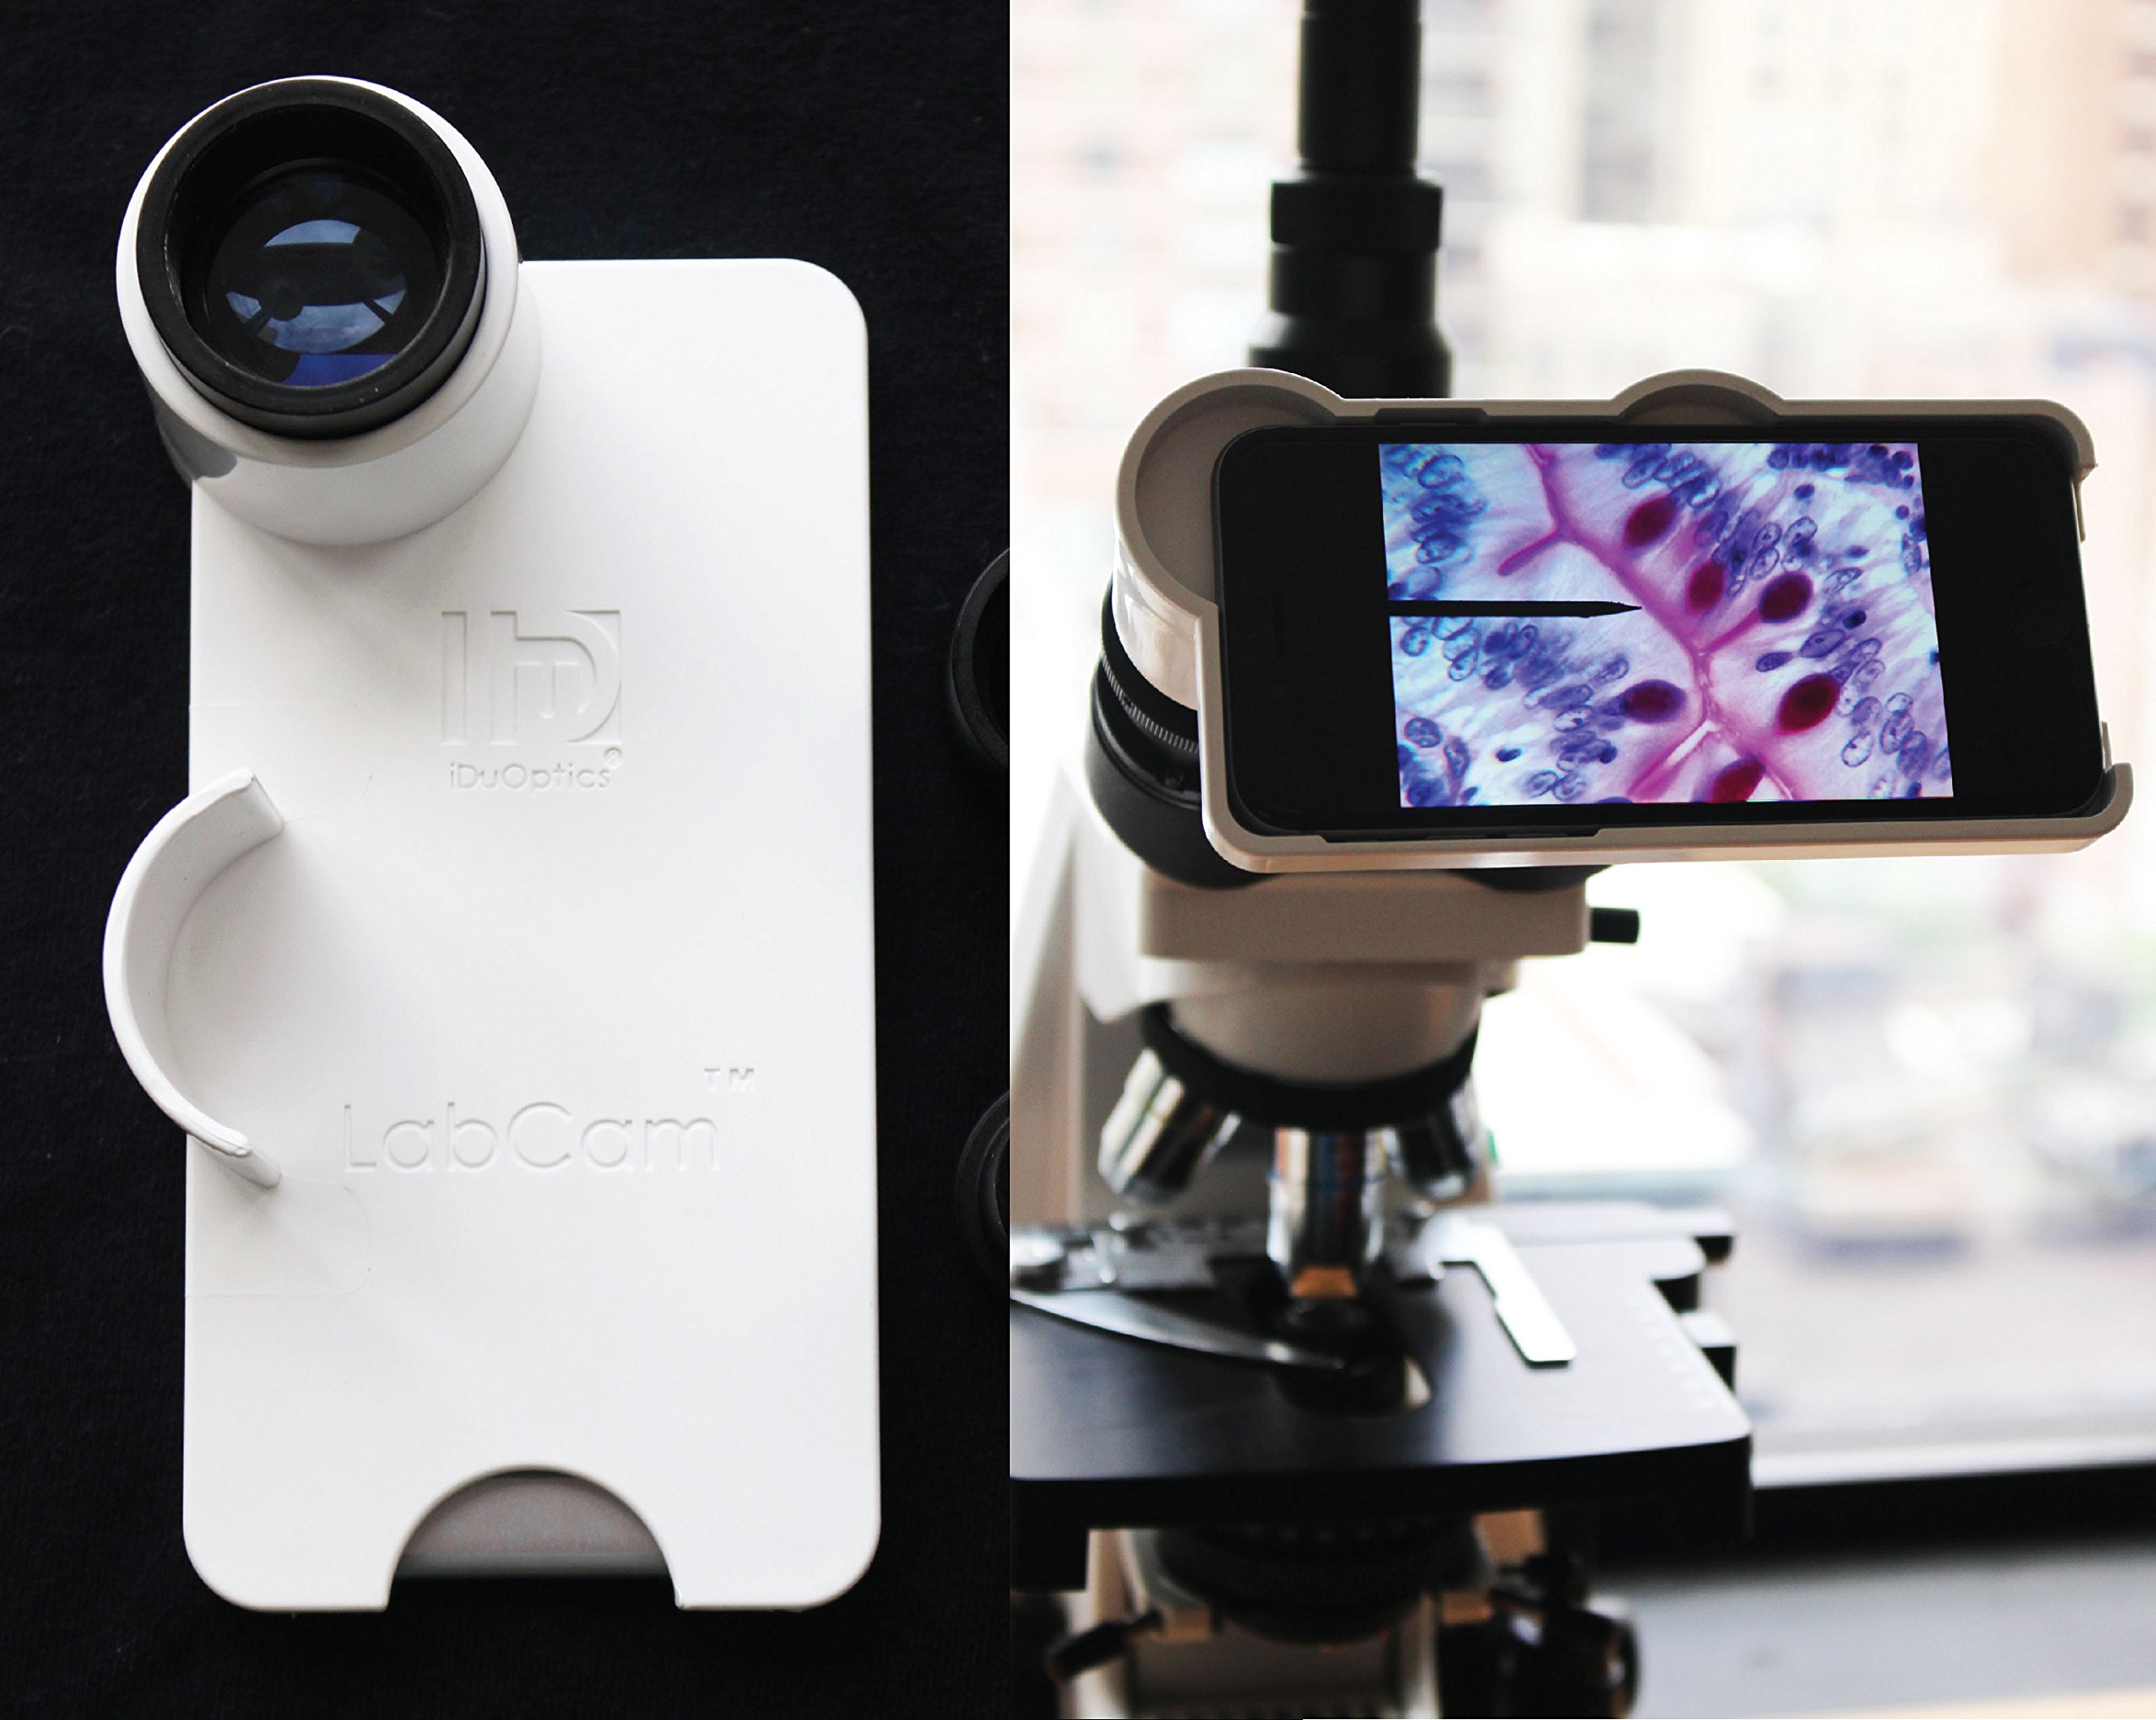 LabCam Microscope/Telescope Adapter for iPhone X by iDu Optics